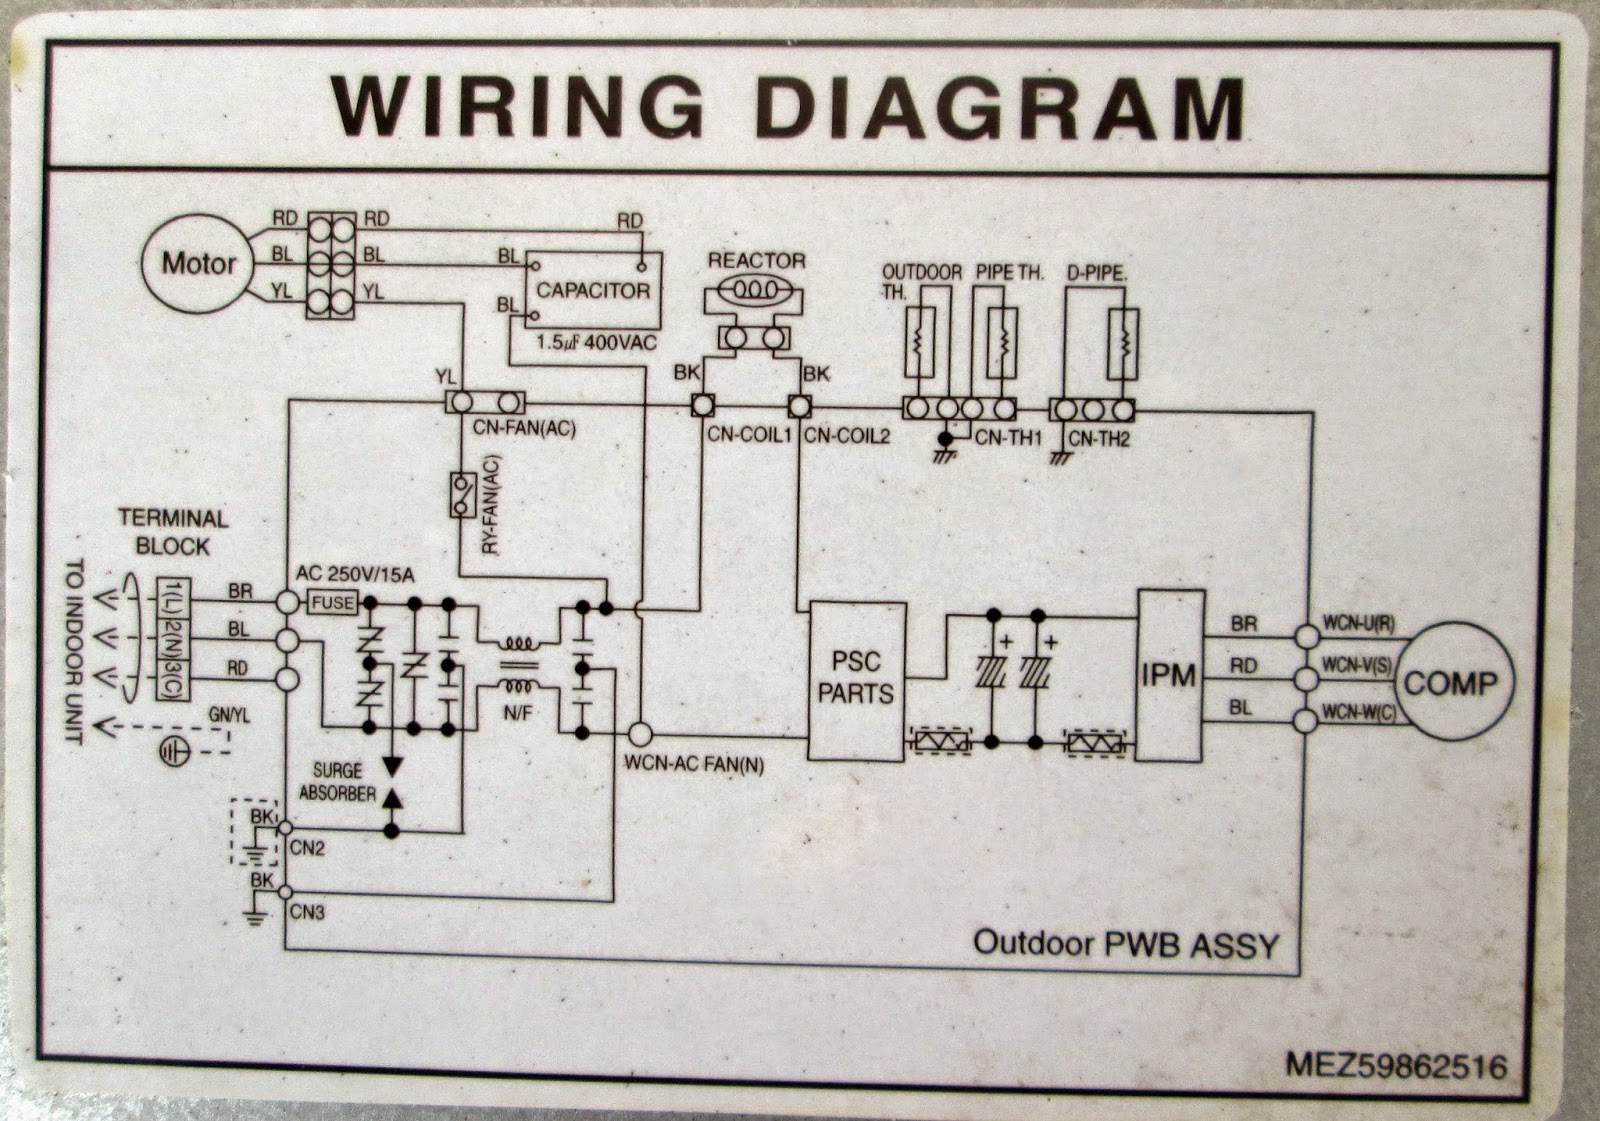 hight resolution of split system air con wiring diagram wiring diagram advance split system air conditioner wiring diagram split air con wiring diagram